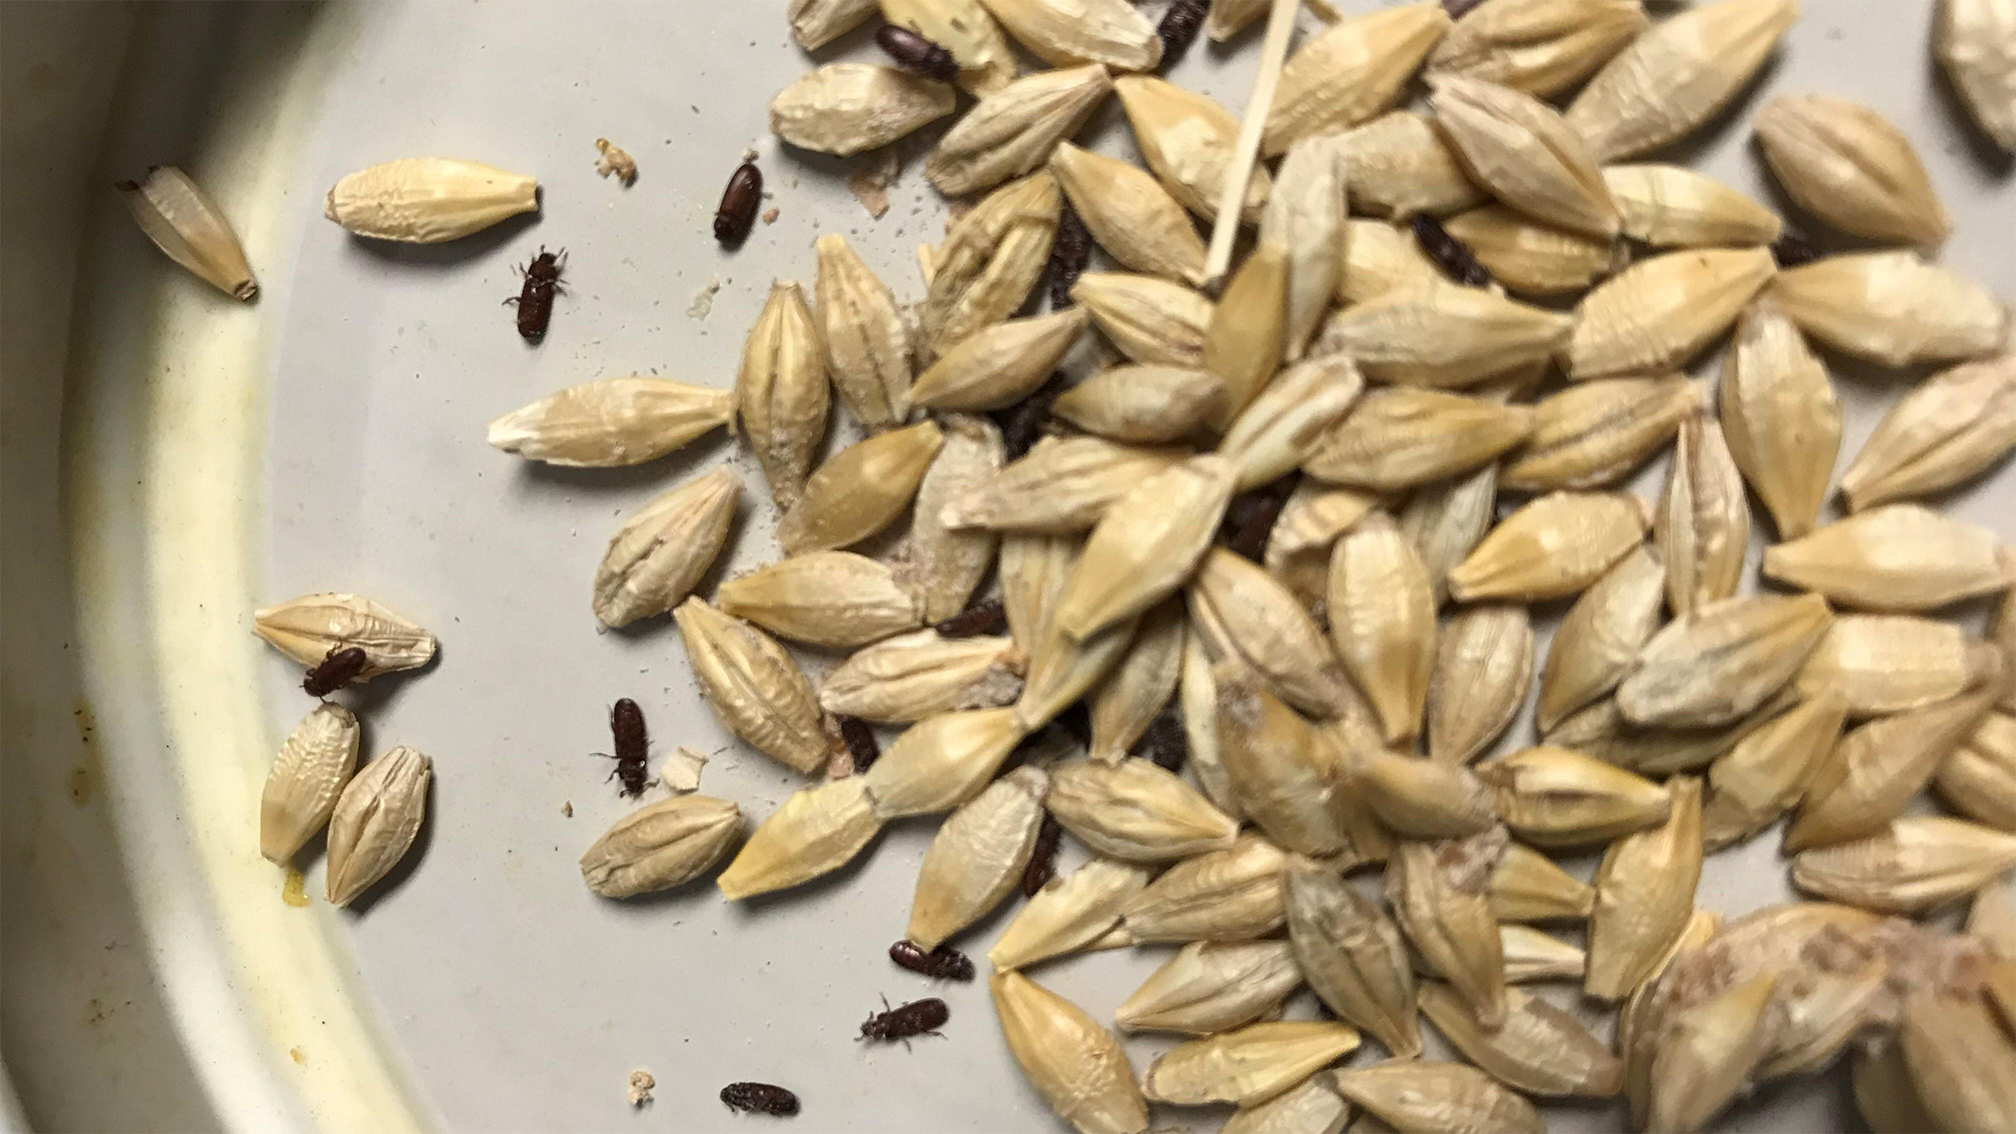 If you find signs of bugs in stored grain, it is important to properly identify which insects are present to know the most effective means of control.